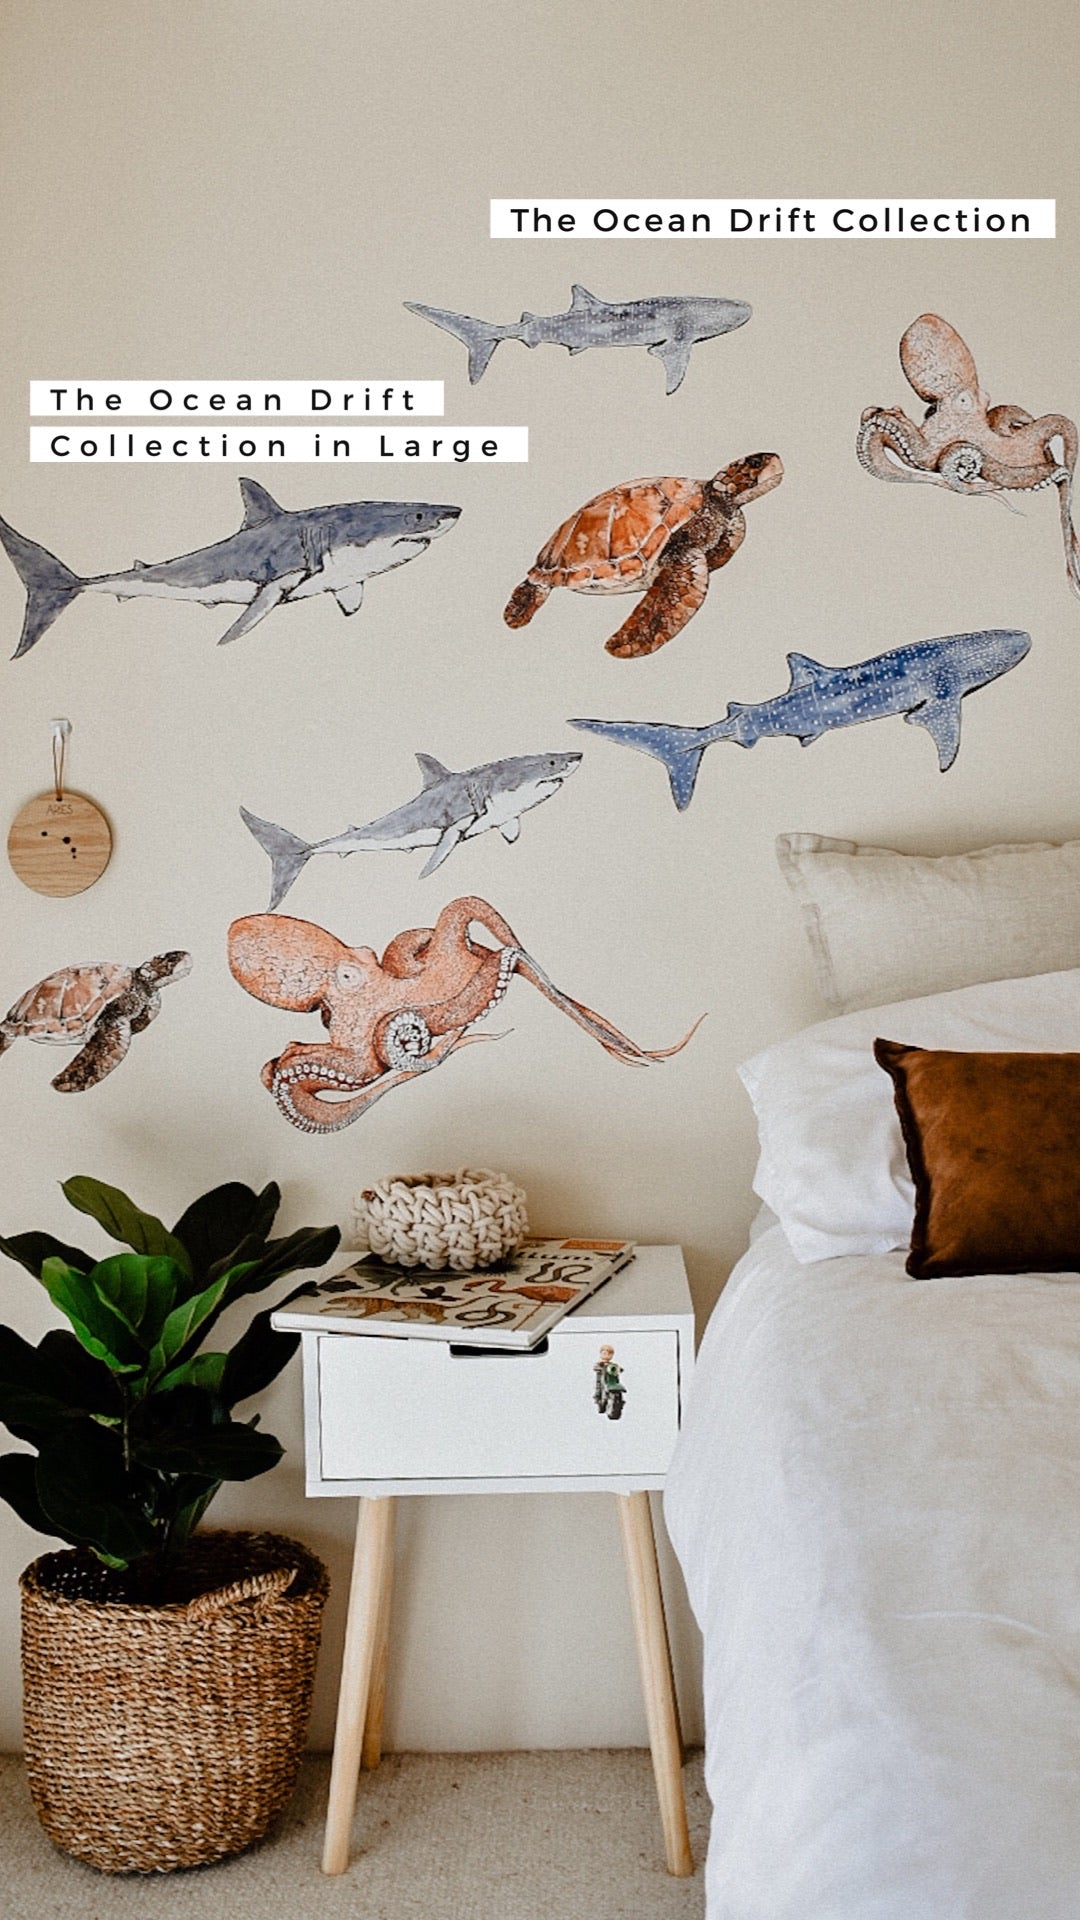 The Ocean Drift Collection - Original & NEW Extra Large - Fabric Wall Decals